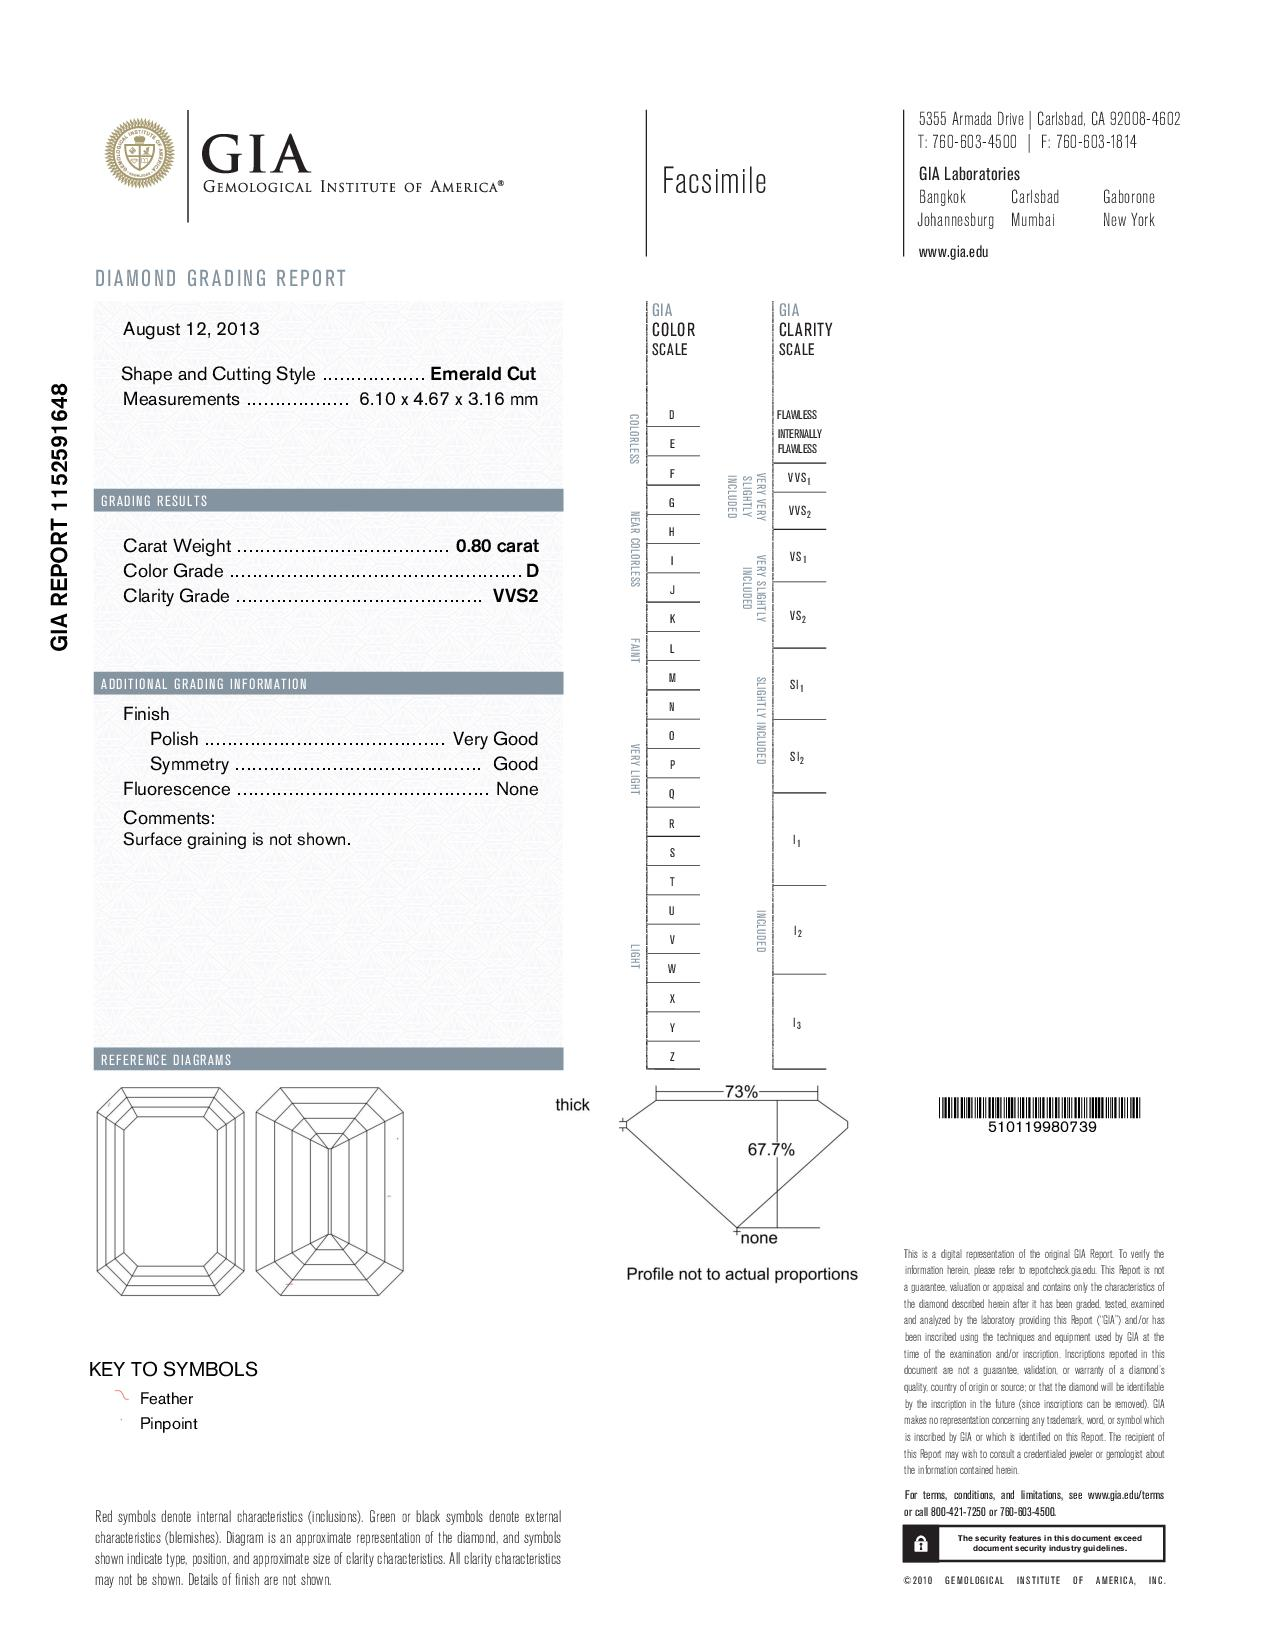 This is a 0.80 carat emerald shape, D color, VVS2 clarity natural diamond accompanied by a GIA grading report.